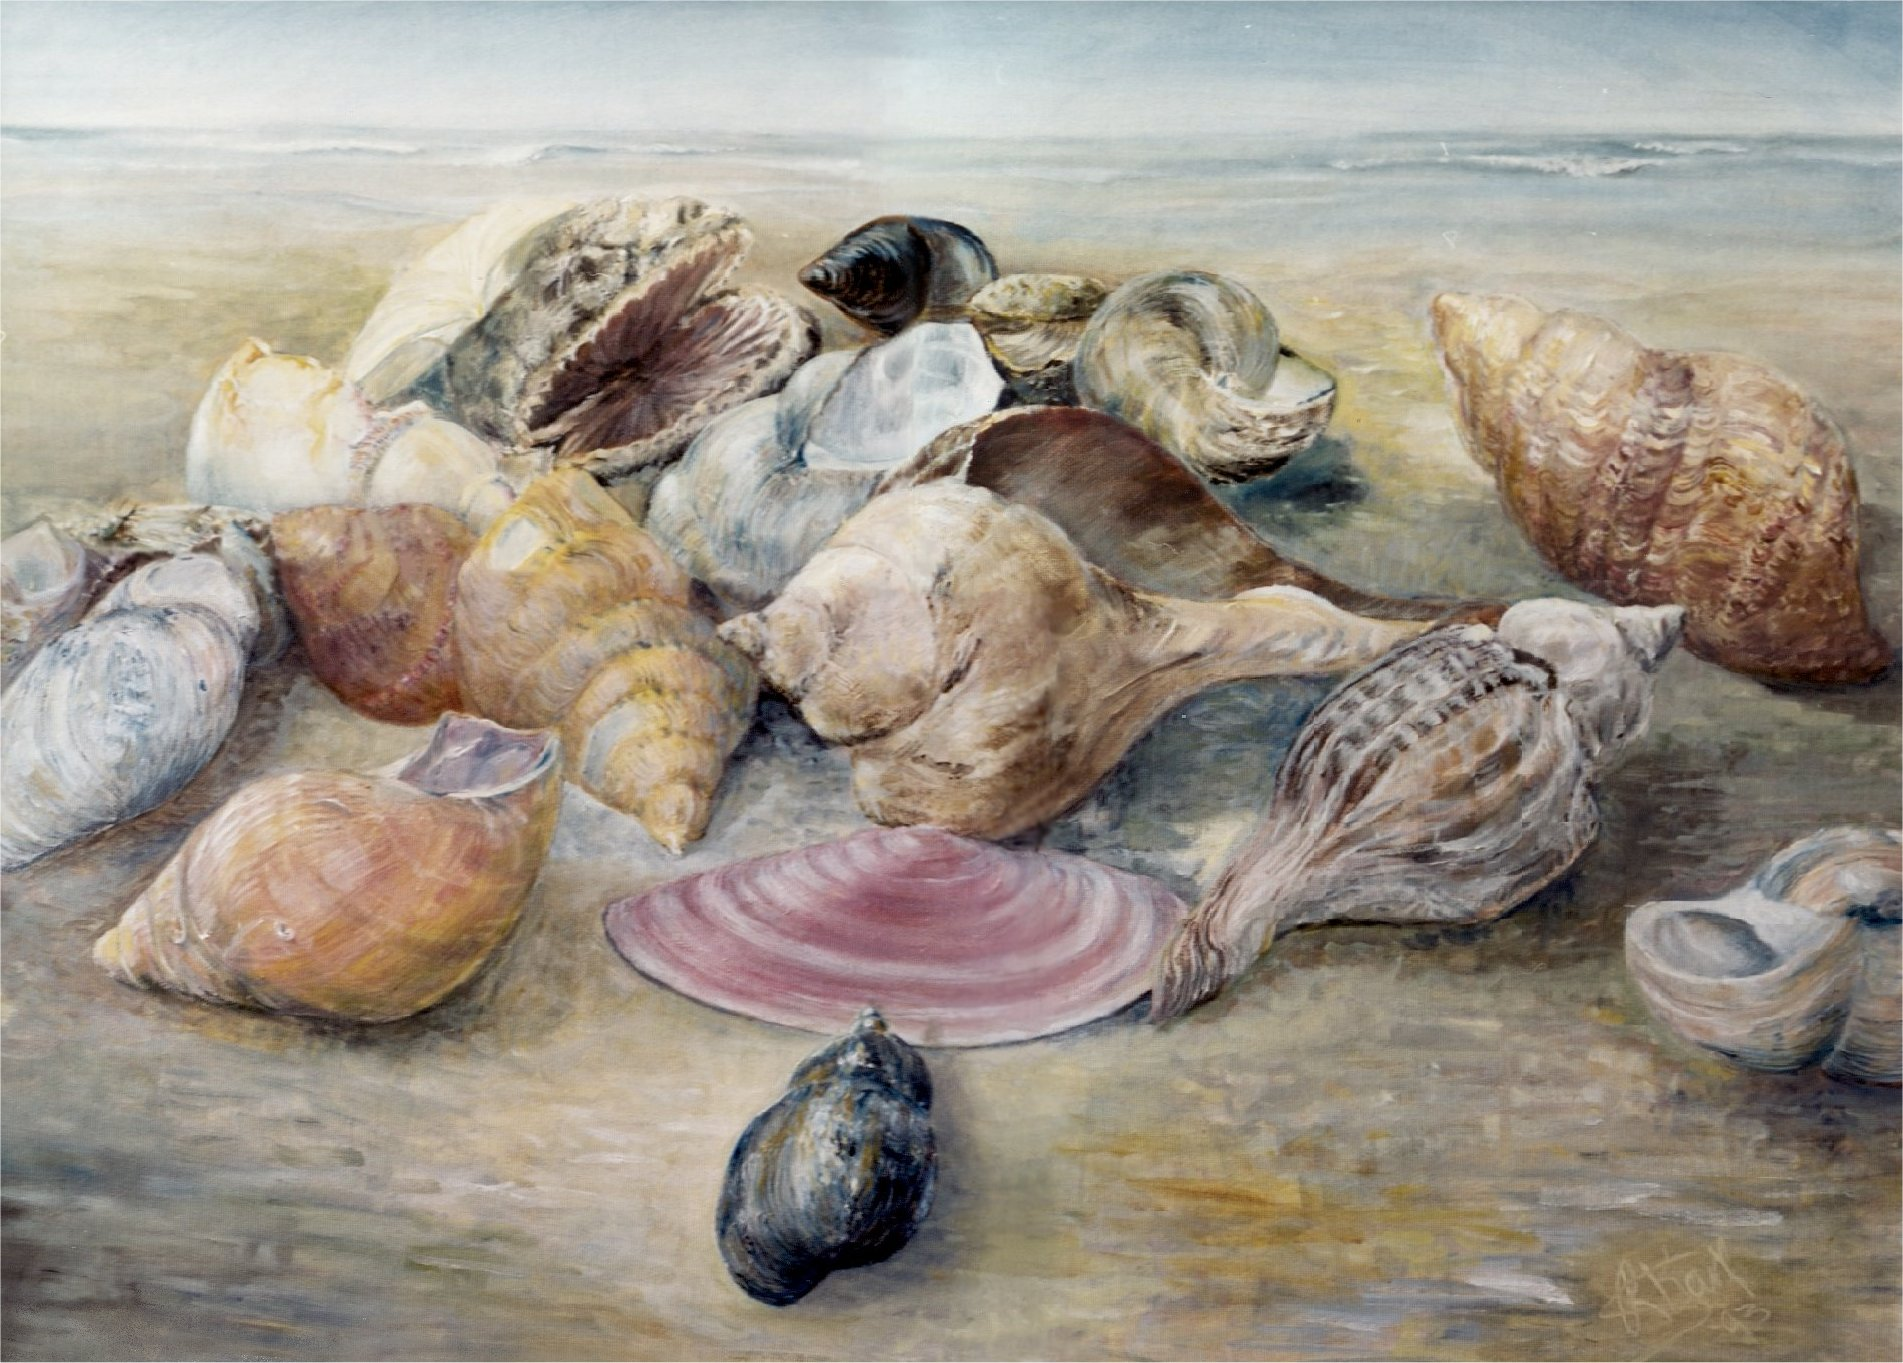 Seashells on the Seashore